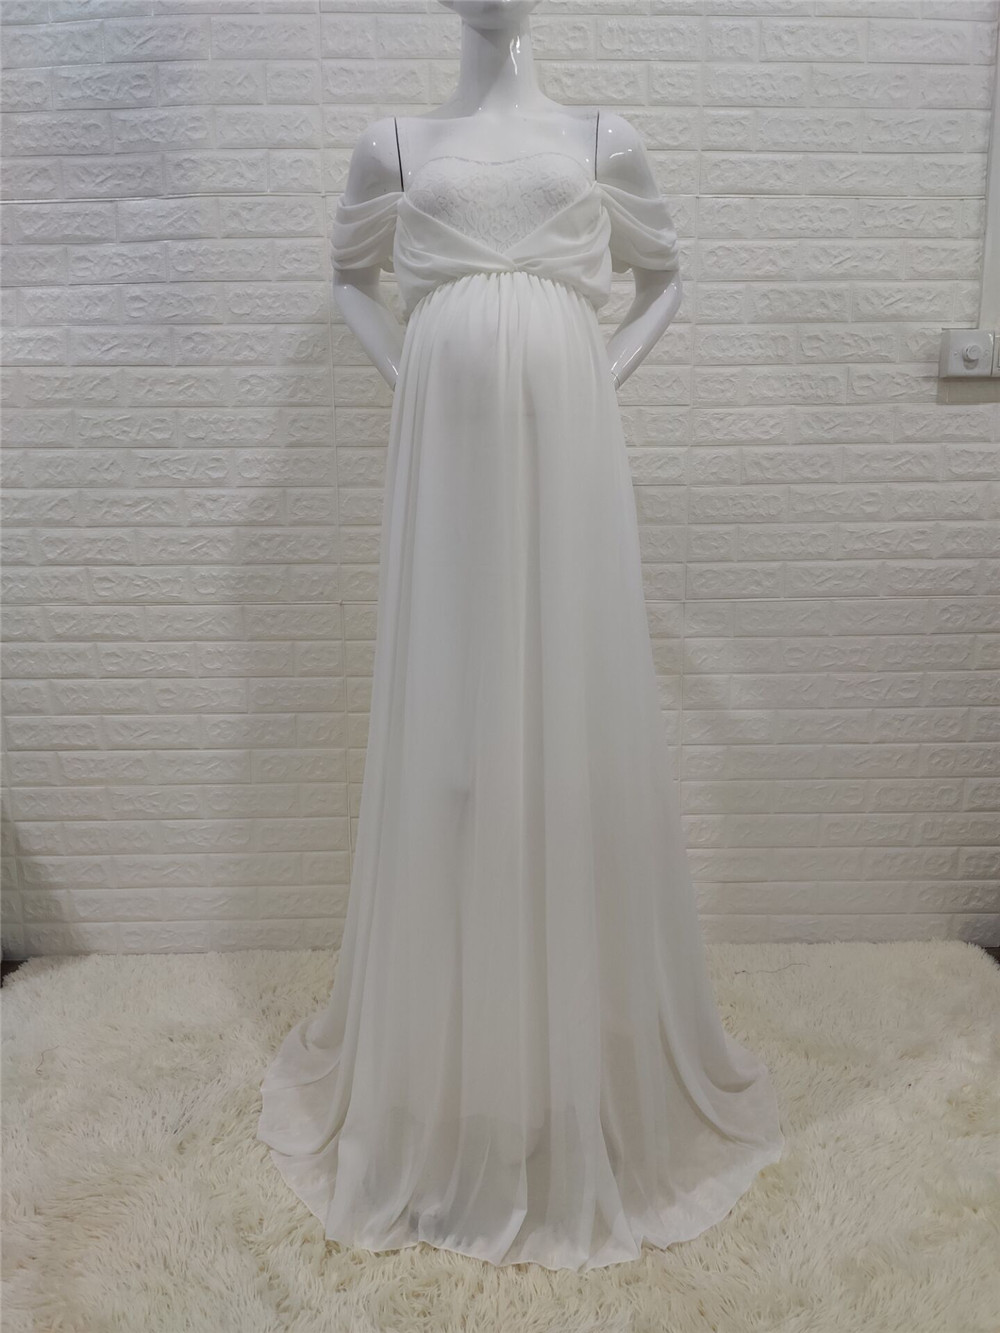 Shoulderless Sexy Maternity Dress Photo Shoot Long Pregnancy Dresses Photography Props Lace Chiffon Maxi Gown For Pregnant Women (13)